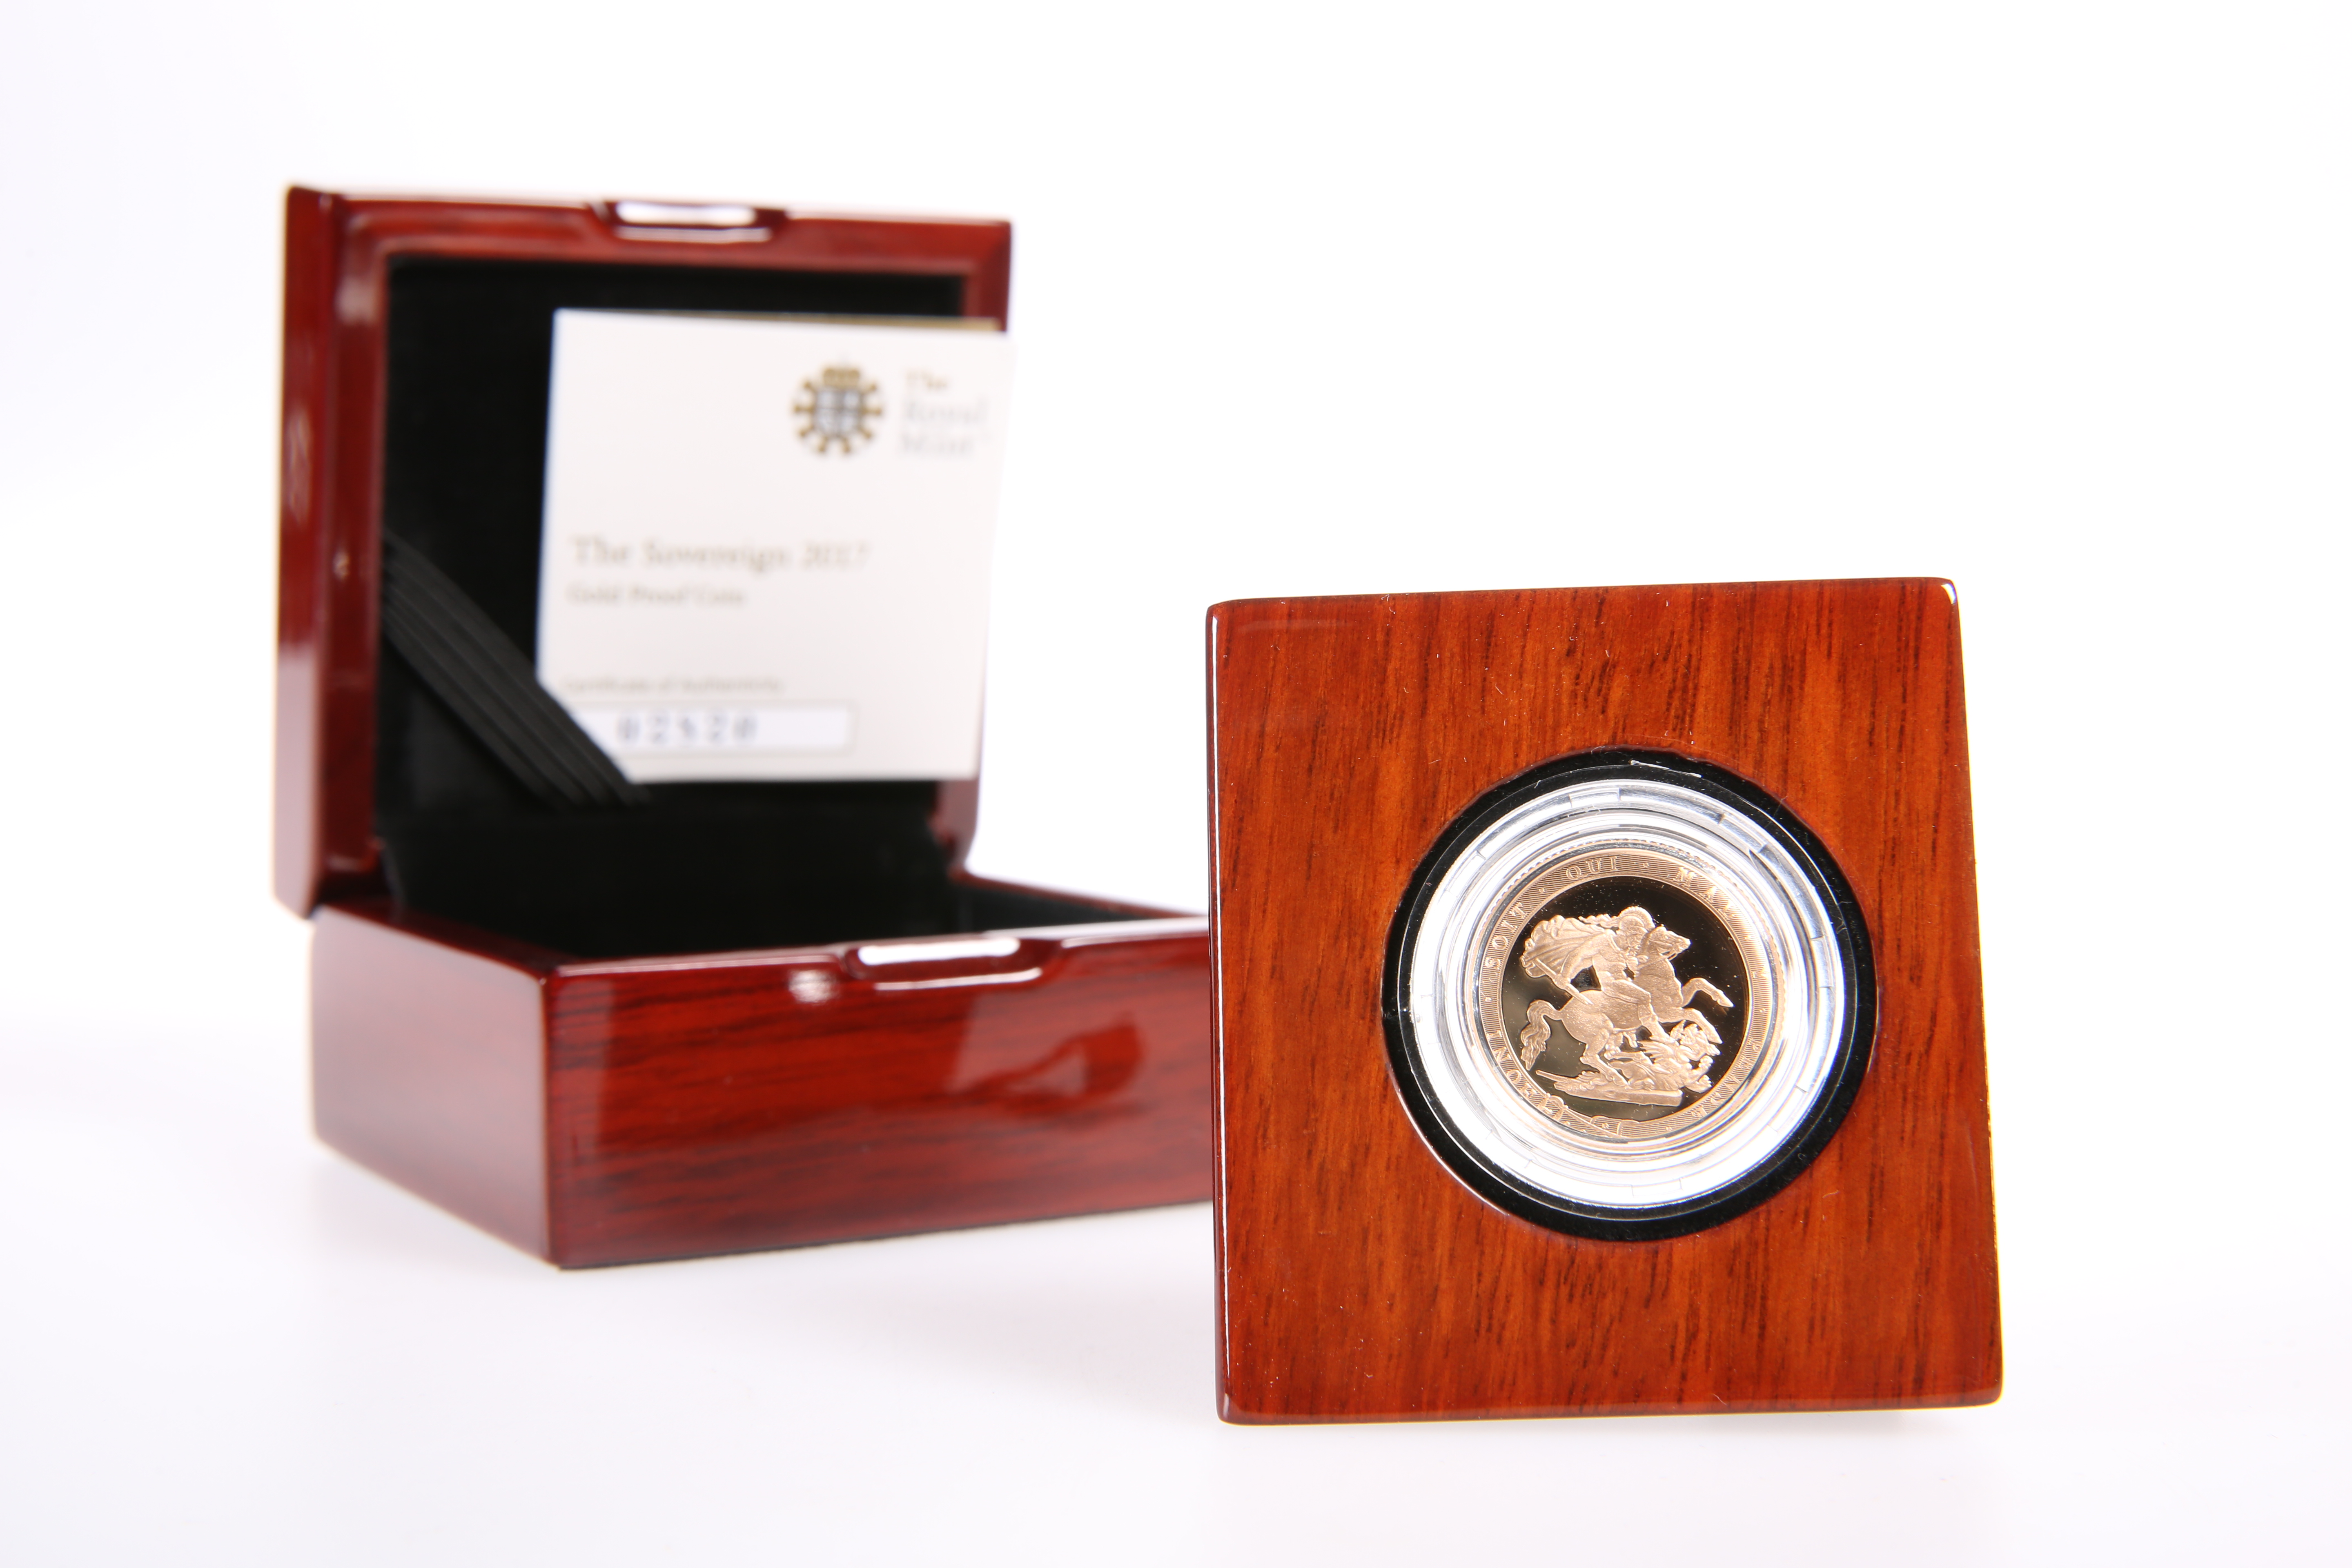 A GOLD PROOF FULL SOVEREIGN, 2017, in Royal Mint box with COA no. 02820